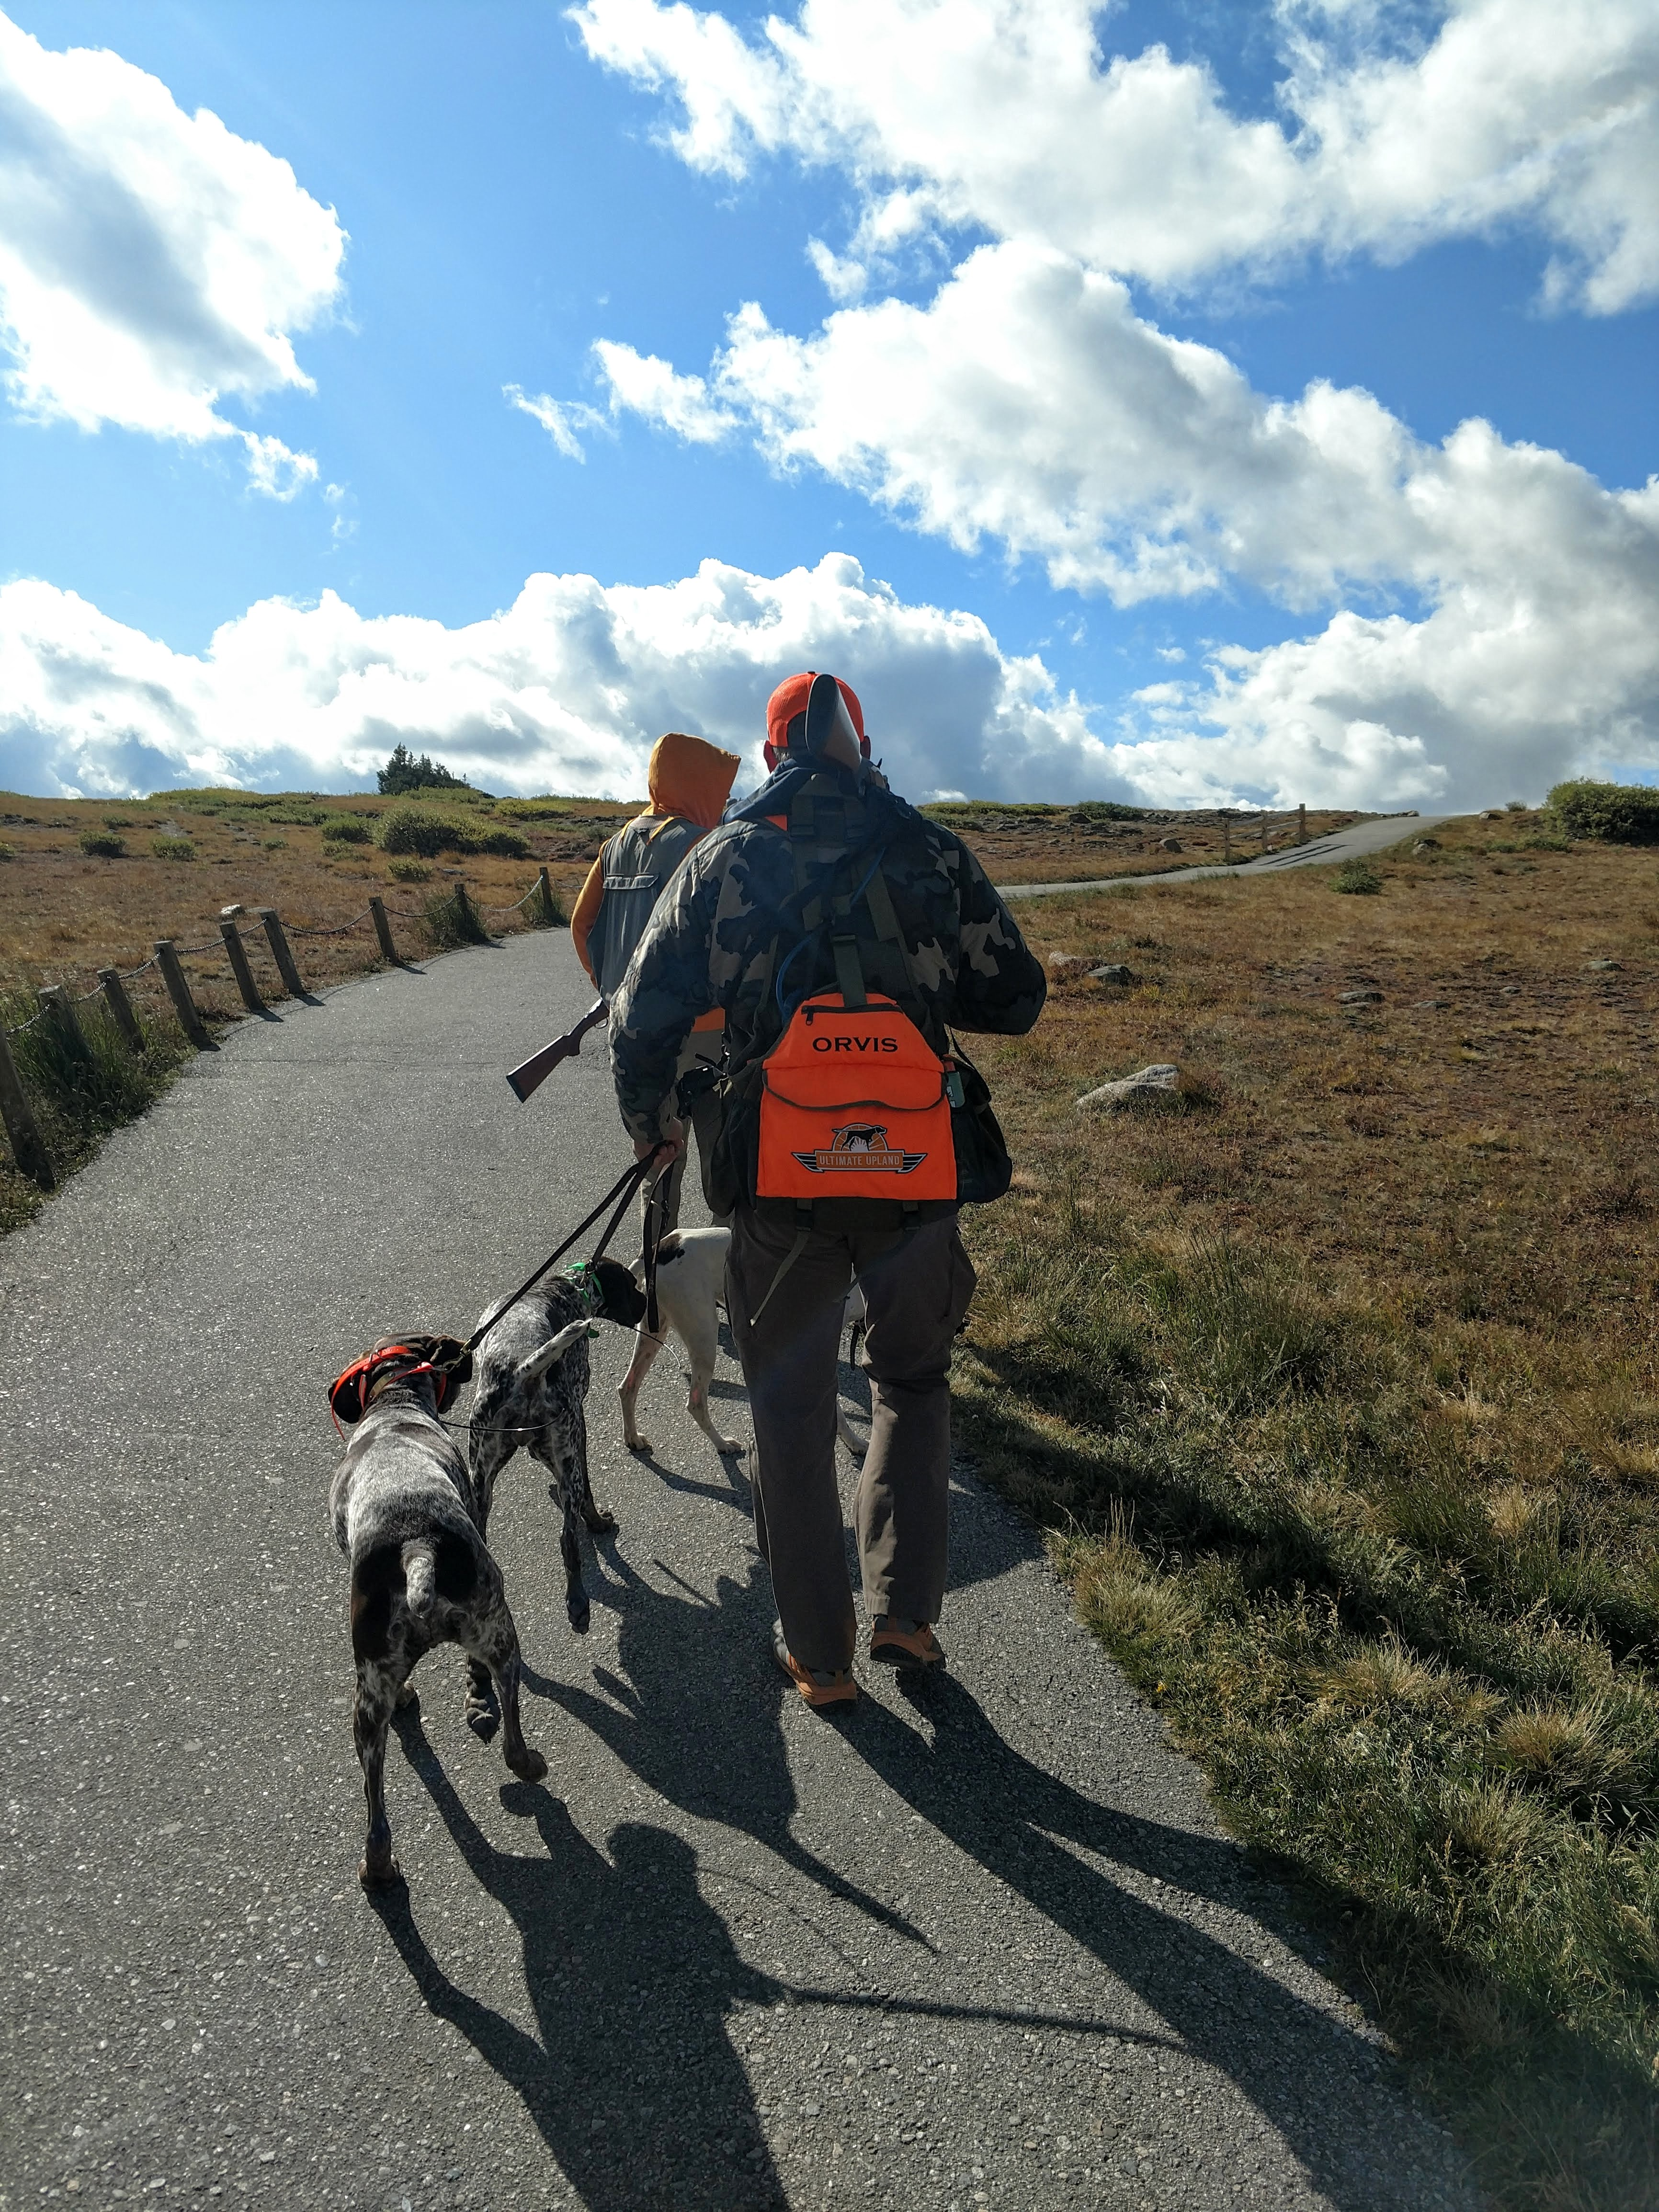 Gearing up for another ptarmigan hunt in another high traffic area.